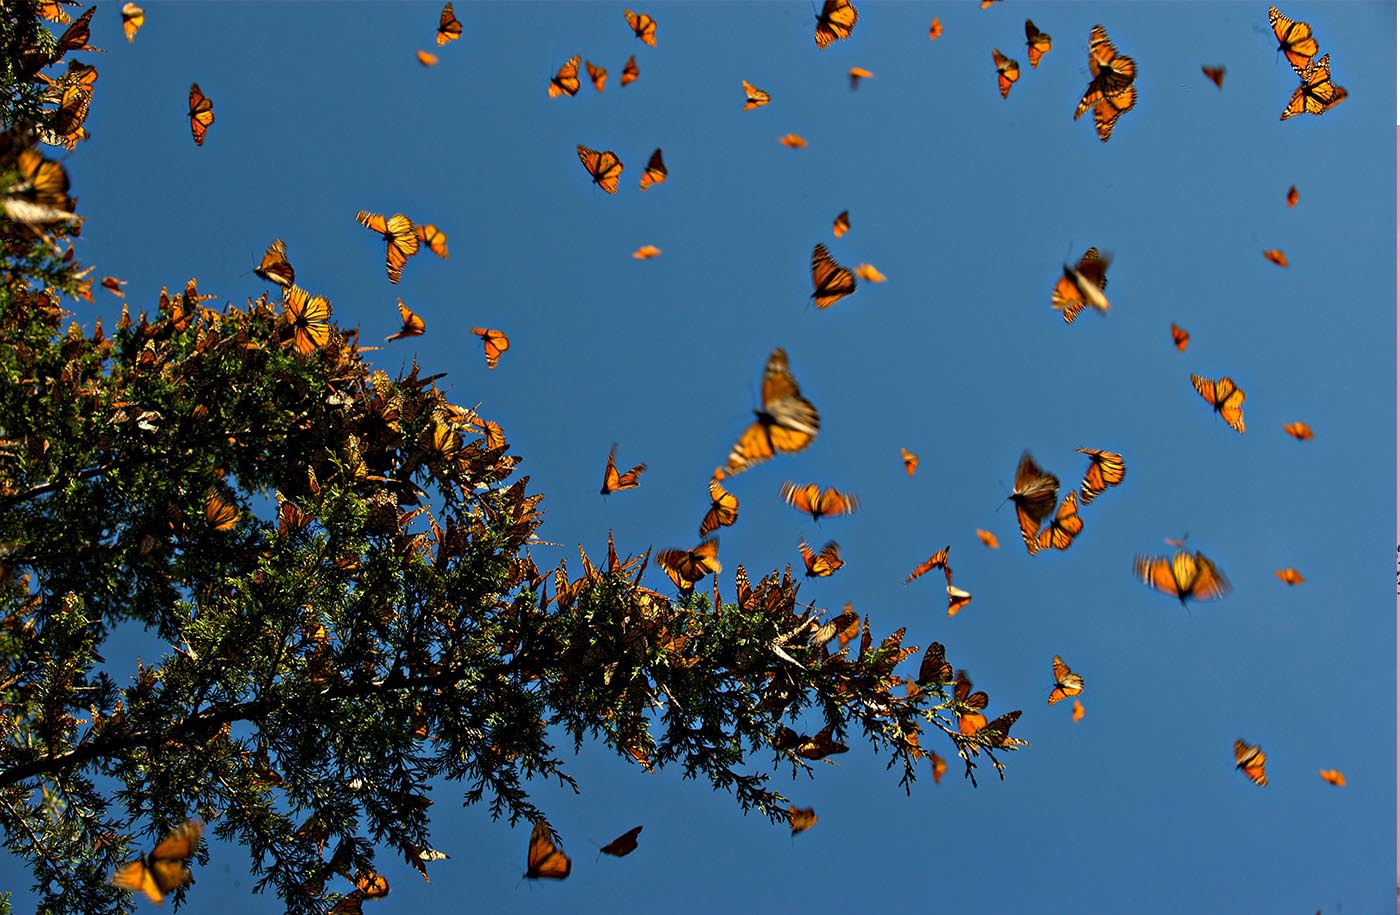 The monarch butterflies migration